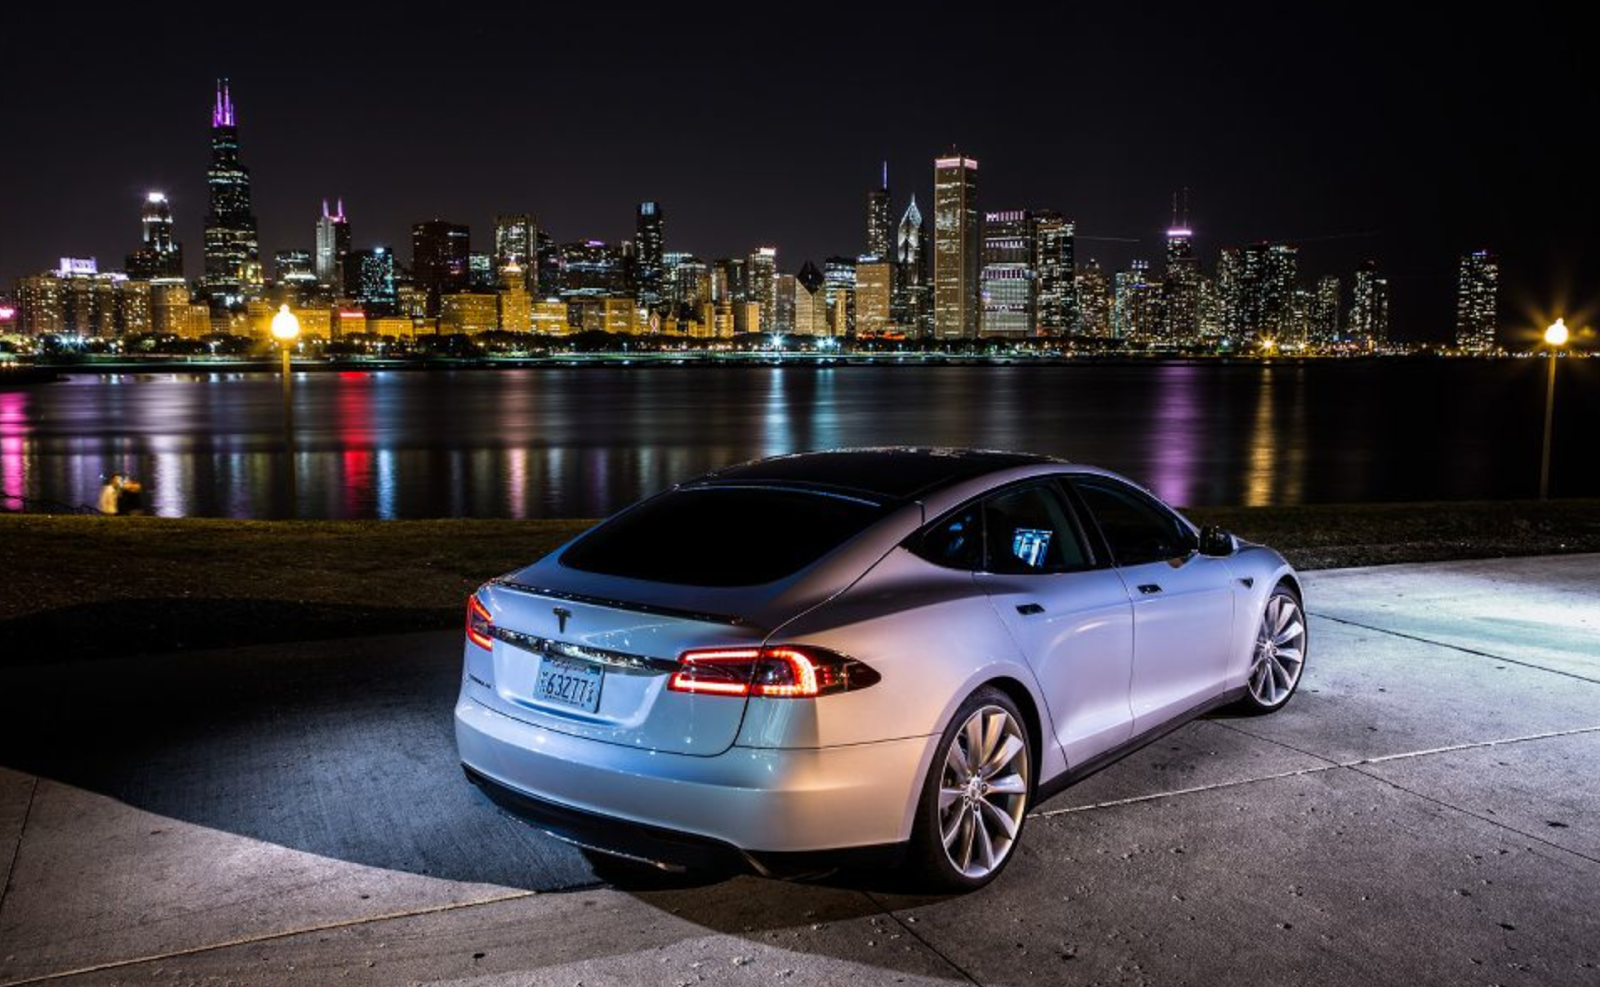 Wide HDQ Tesla Wallpapers, Top Pics | BsnSCB Gallery